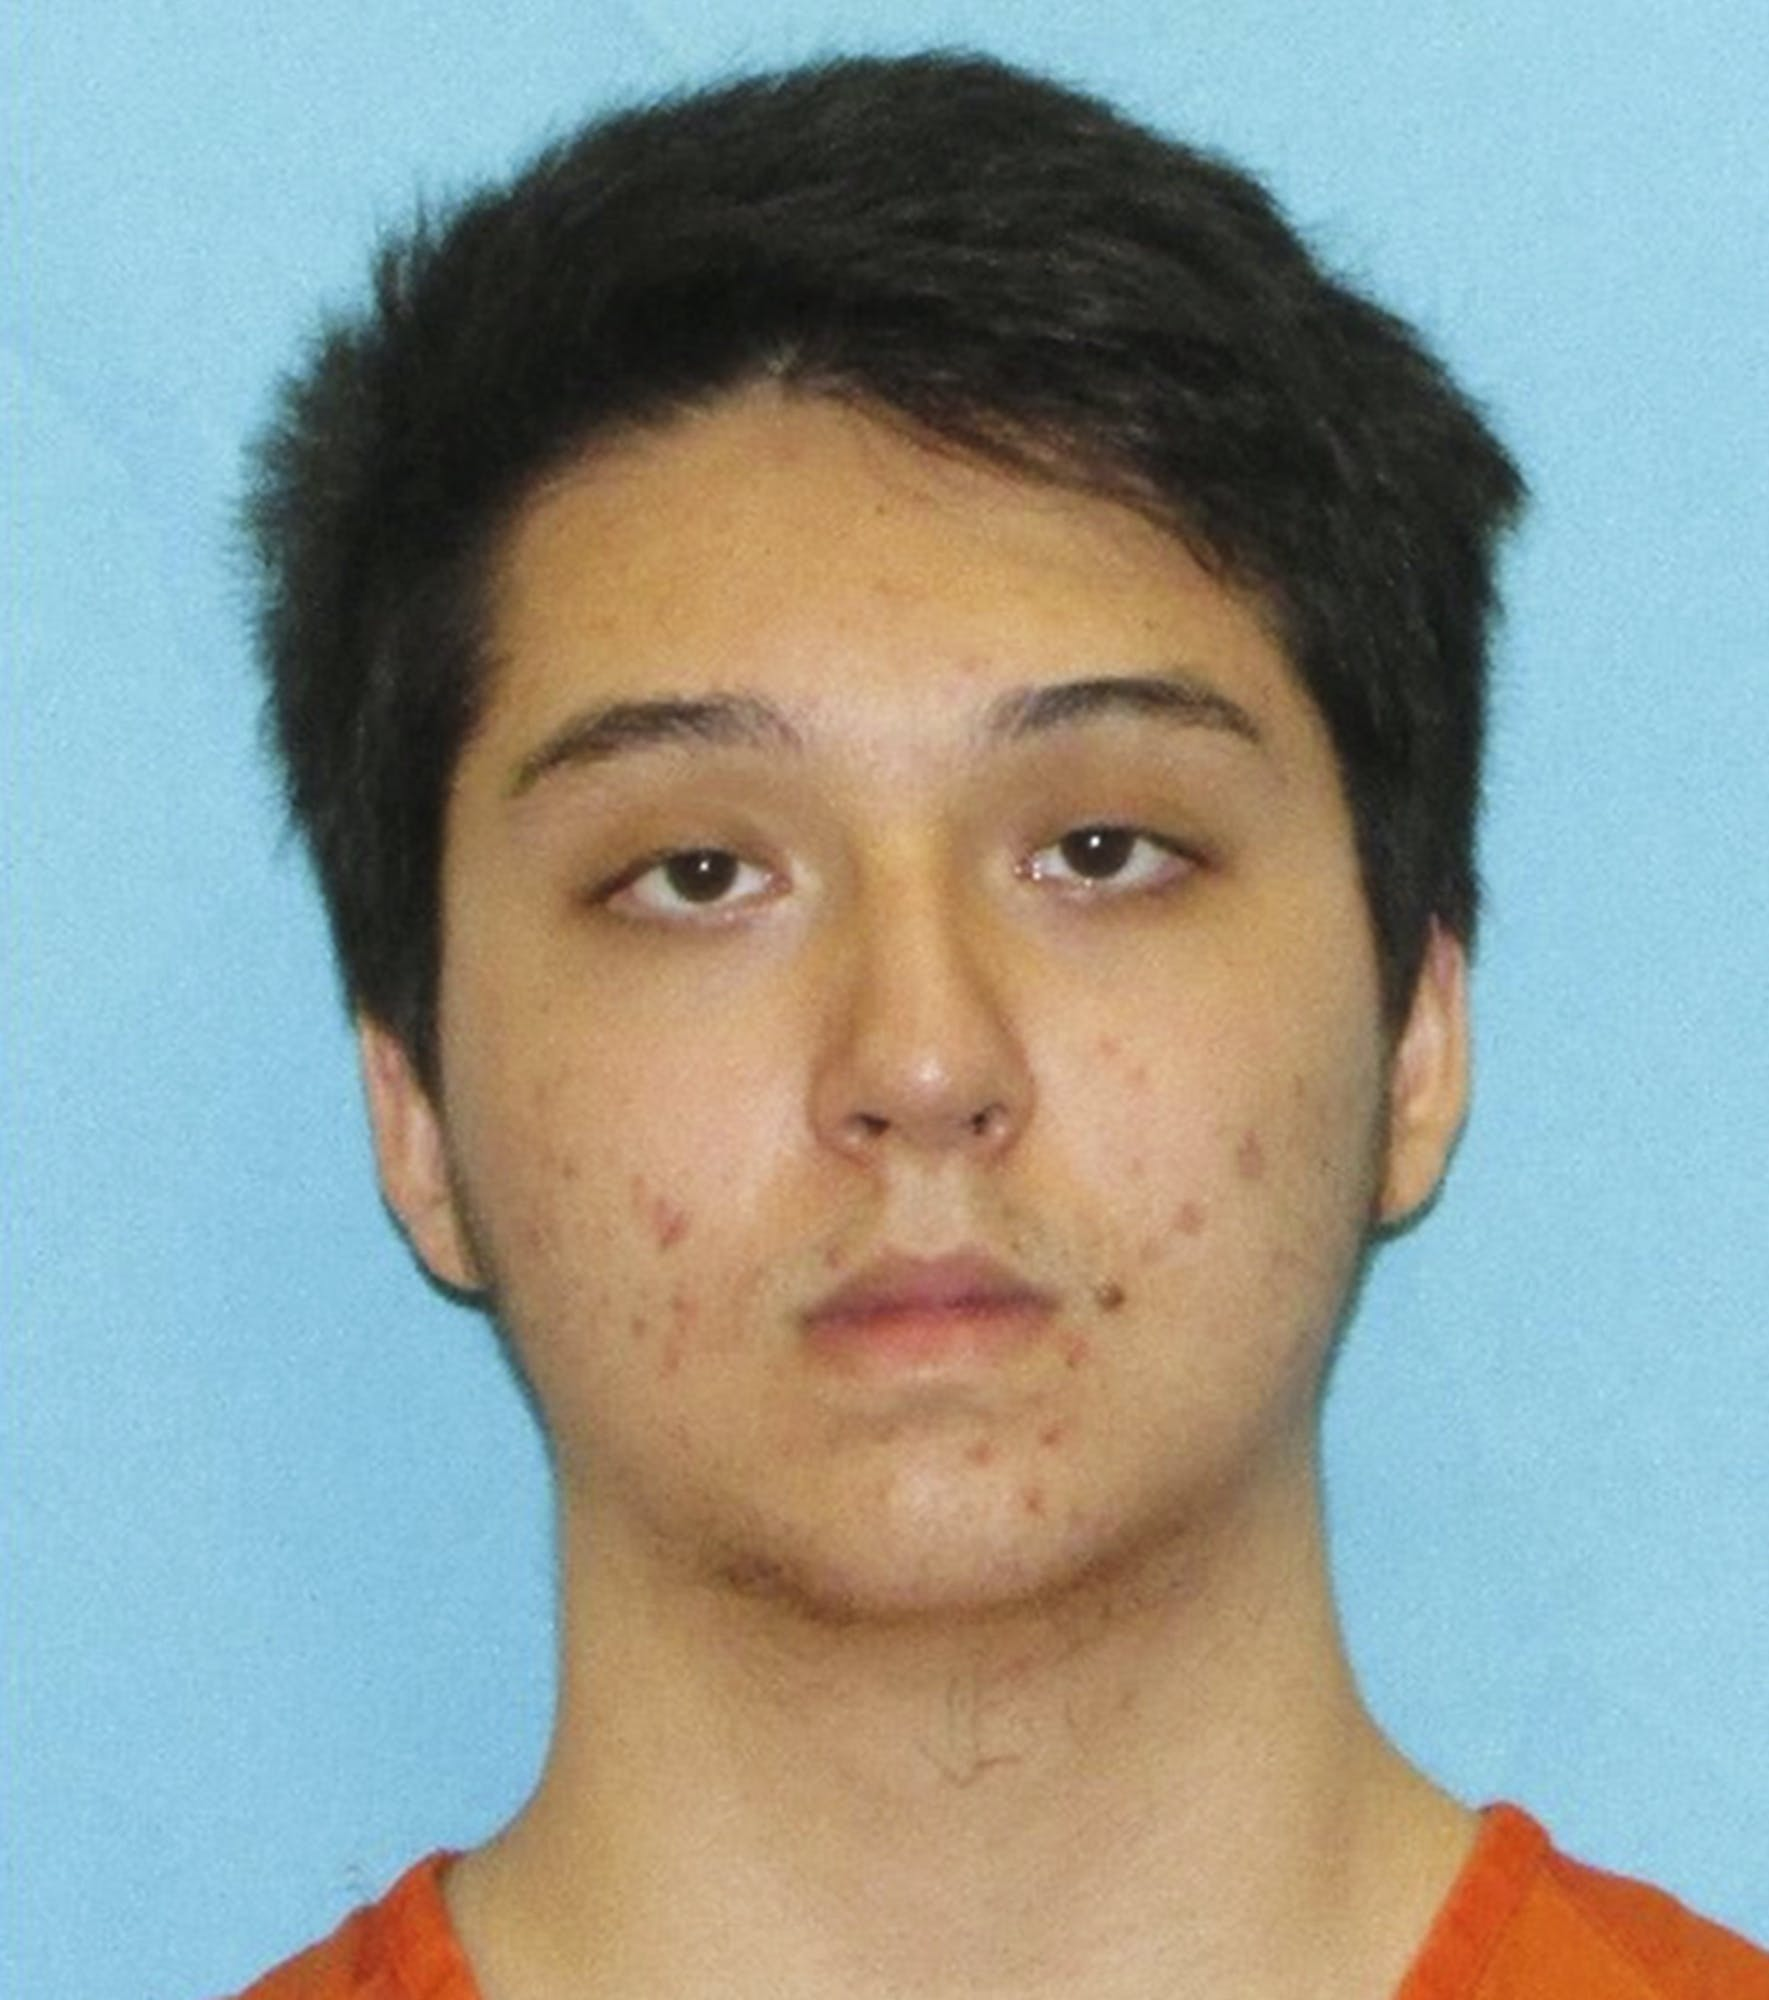 This photo provided by the Collin County District Attorney's office in Texas shows Matin Azizi-Yarand, a teenager from Plano, Texas, who has been charged with criminal solicitation of capital murder and making a terroristic threat. Azizi-Yarand is accused of planning a mass shooting at a mall inspired by the Islamic State terror group. He is being held Wednesday, May 2, 2018, at the Collin County jail in McKinney. (Collin County District Attorney's office via AP)